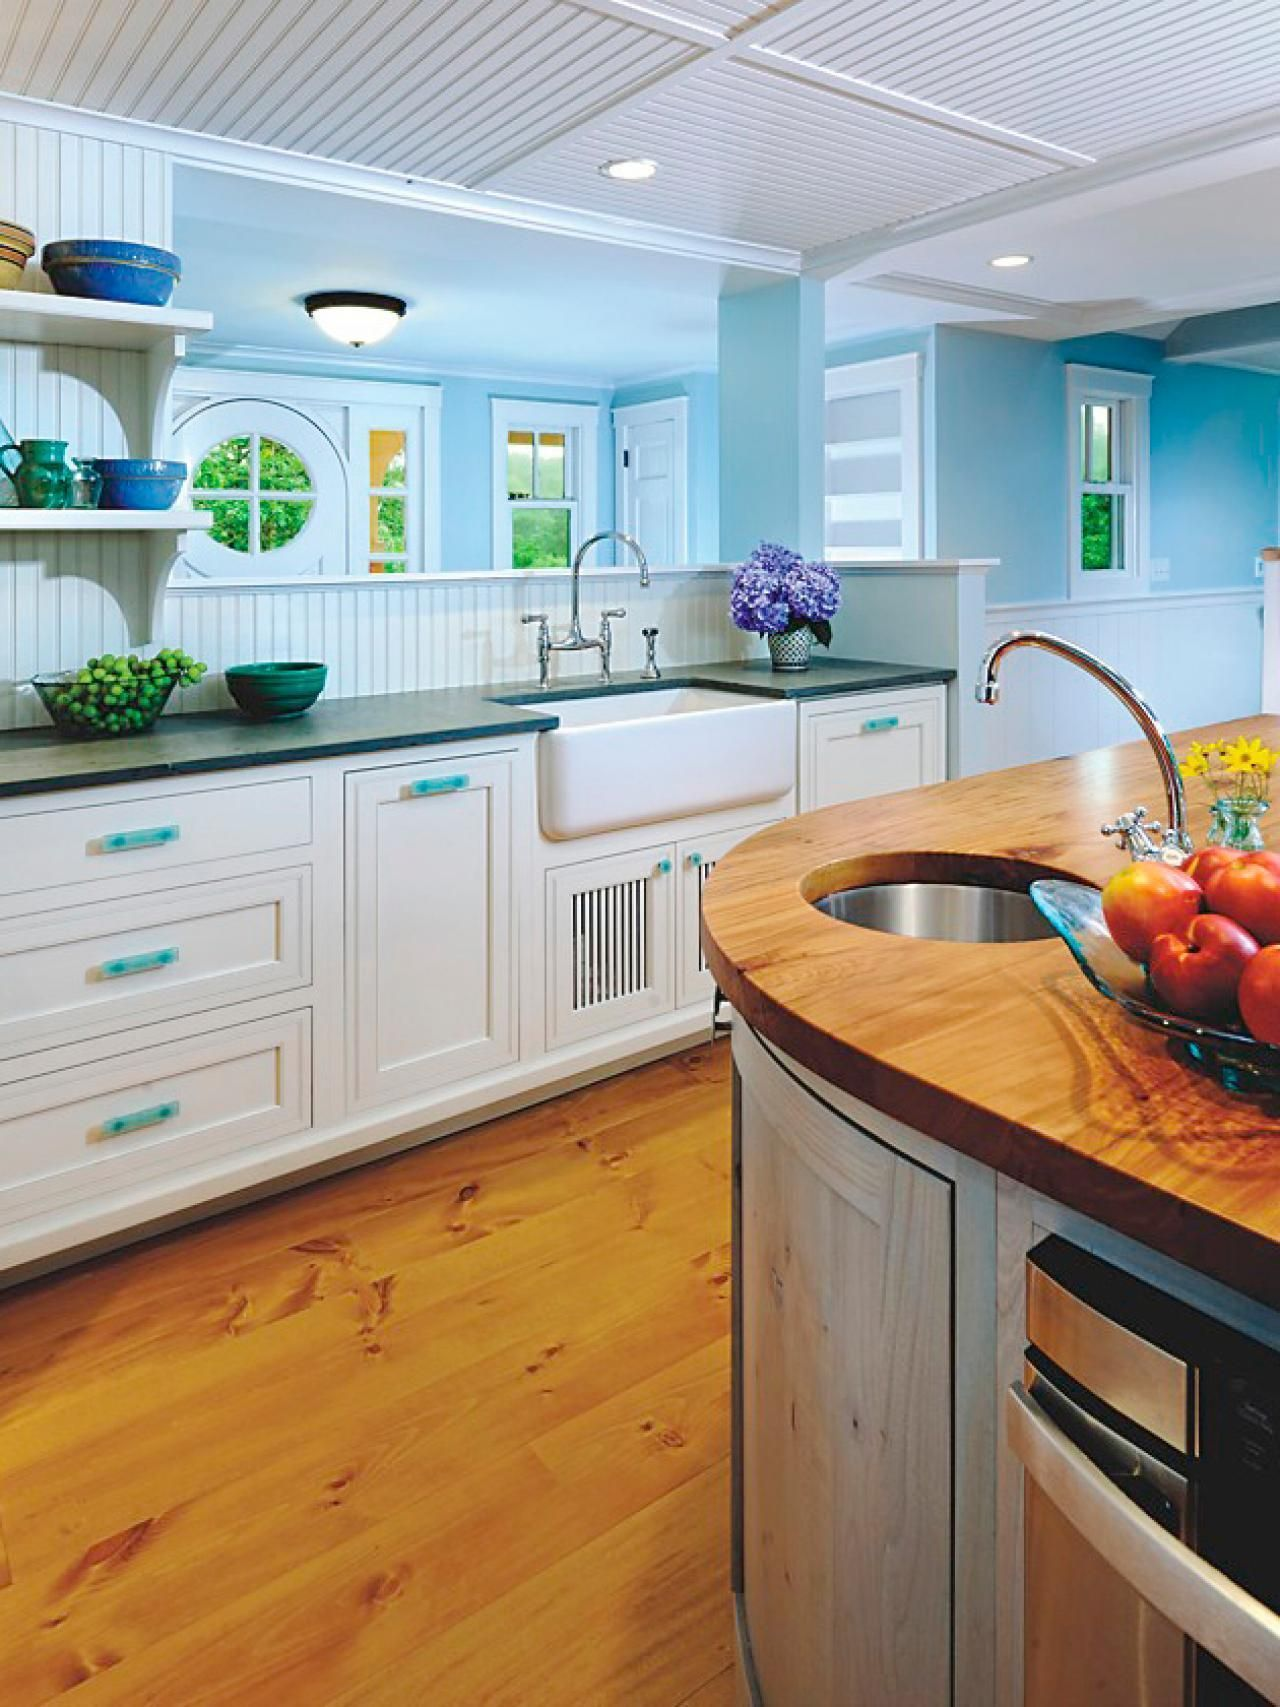 Everything About Painted Kitchen Cabinet Ideas Diy, Two Tone, Rustic,